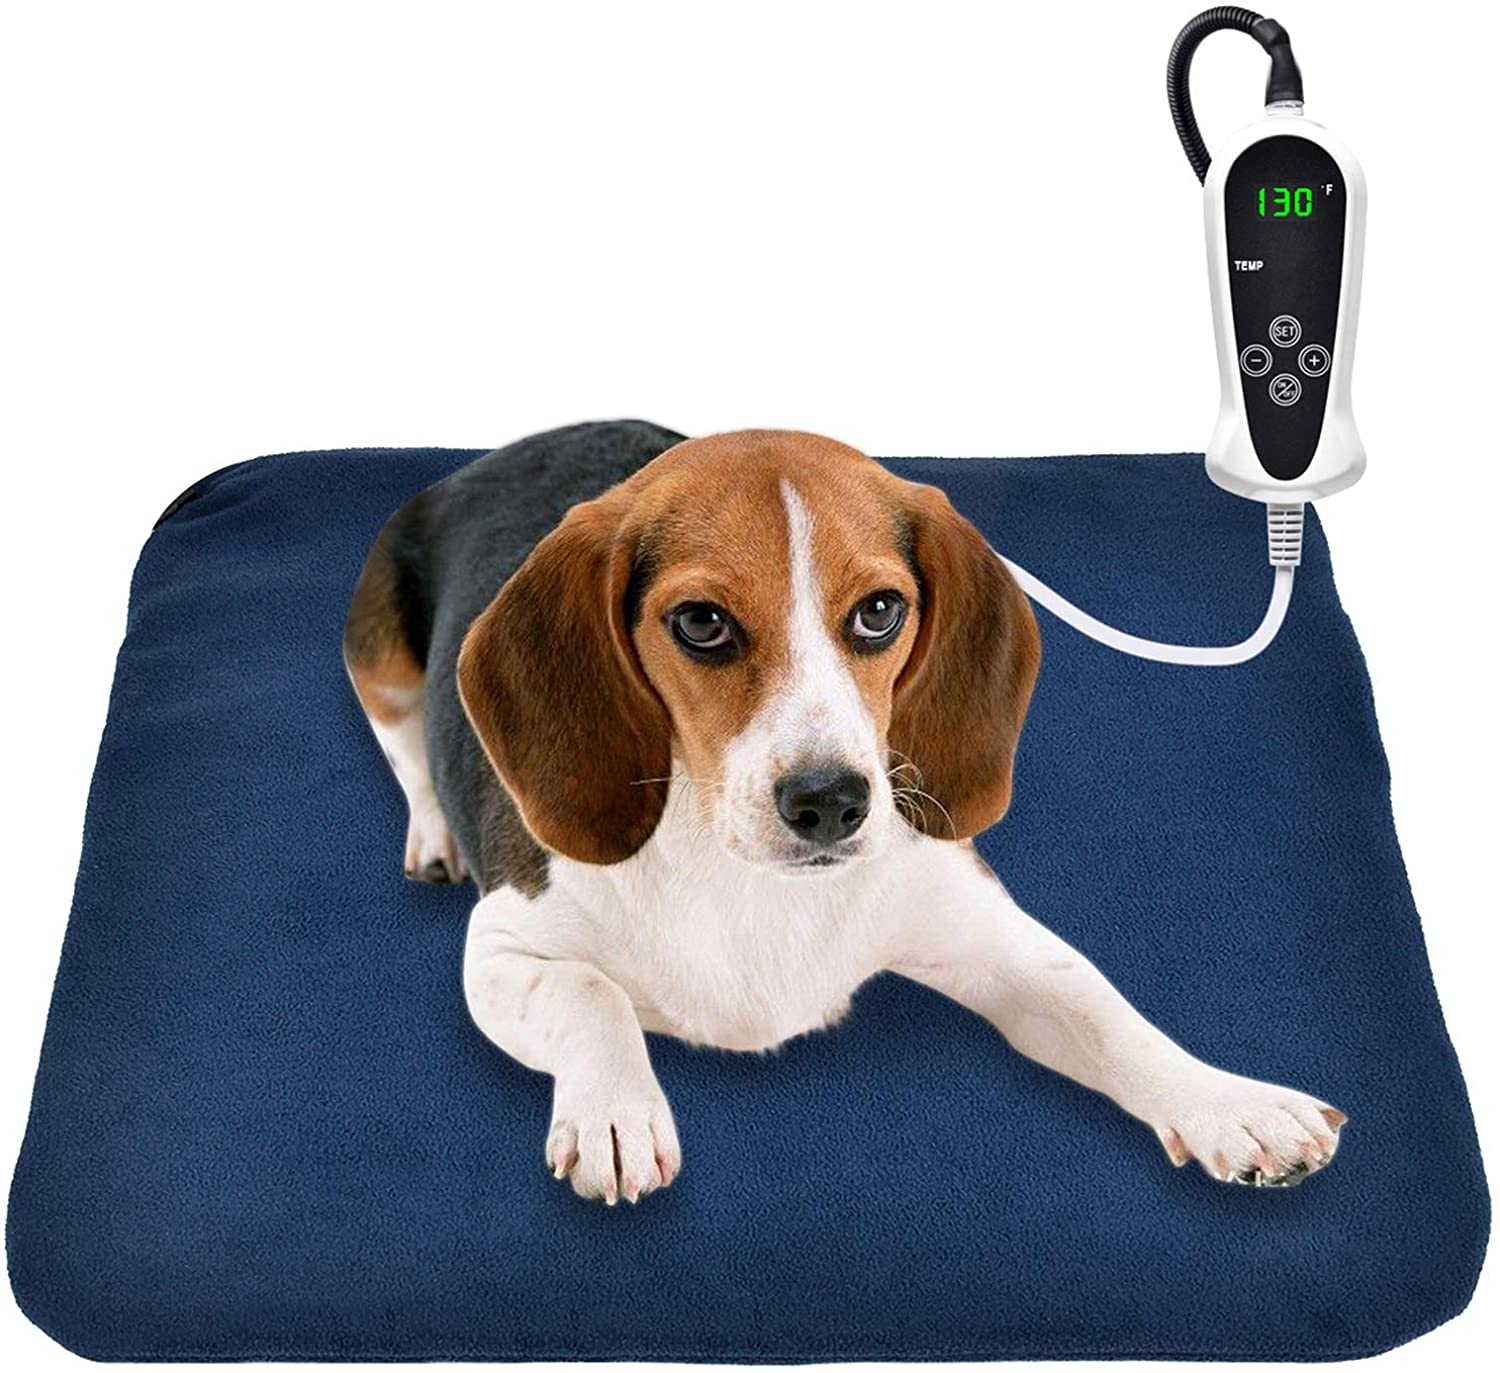 Pet heating pads with auto cut off